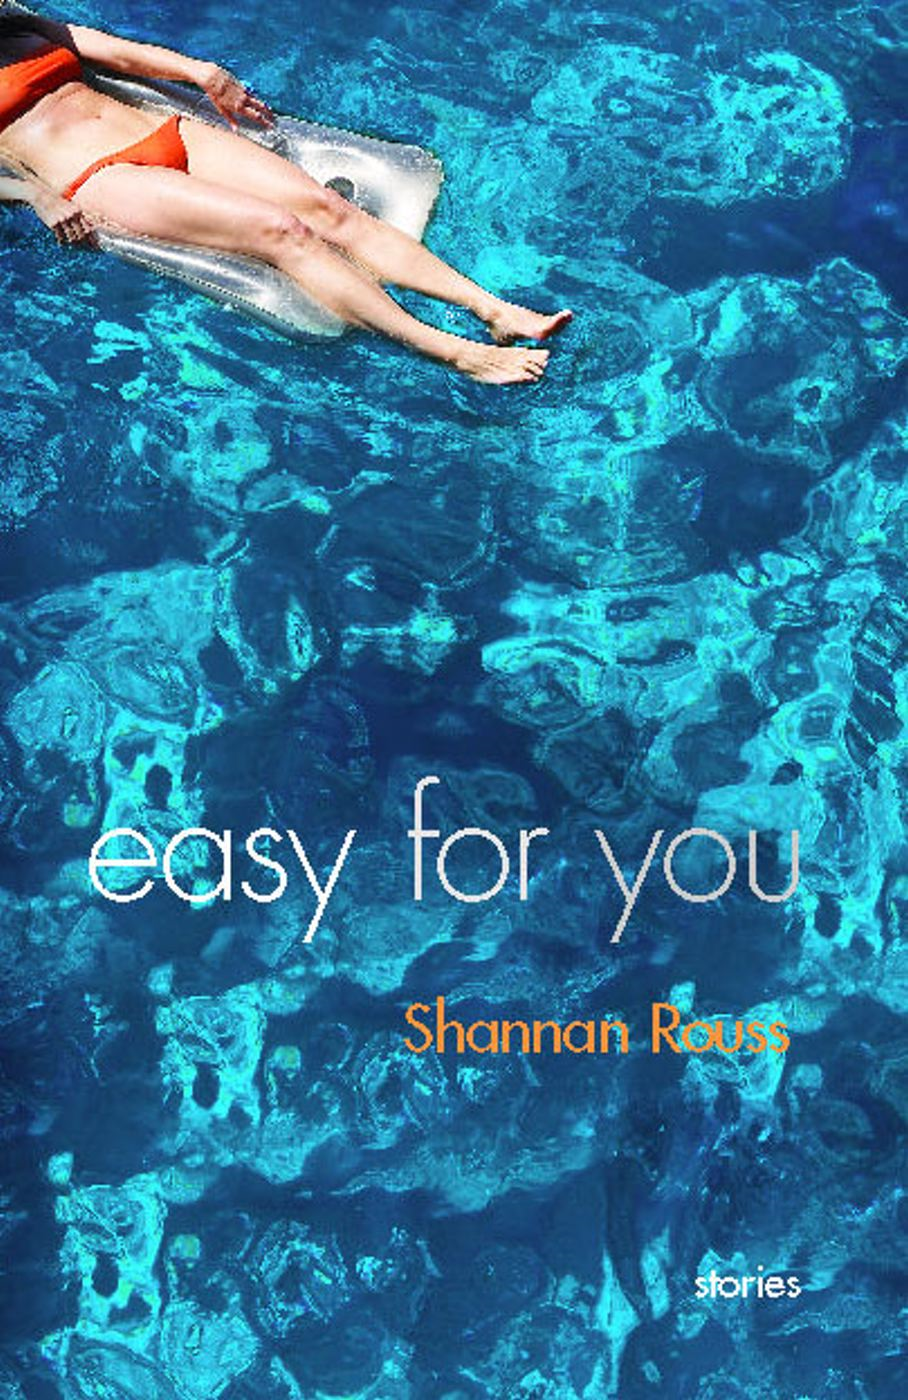 Easy for You By: Shannan Rouss